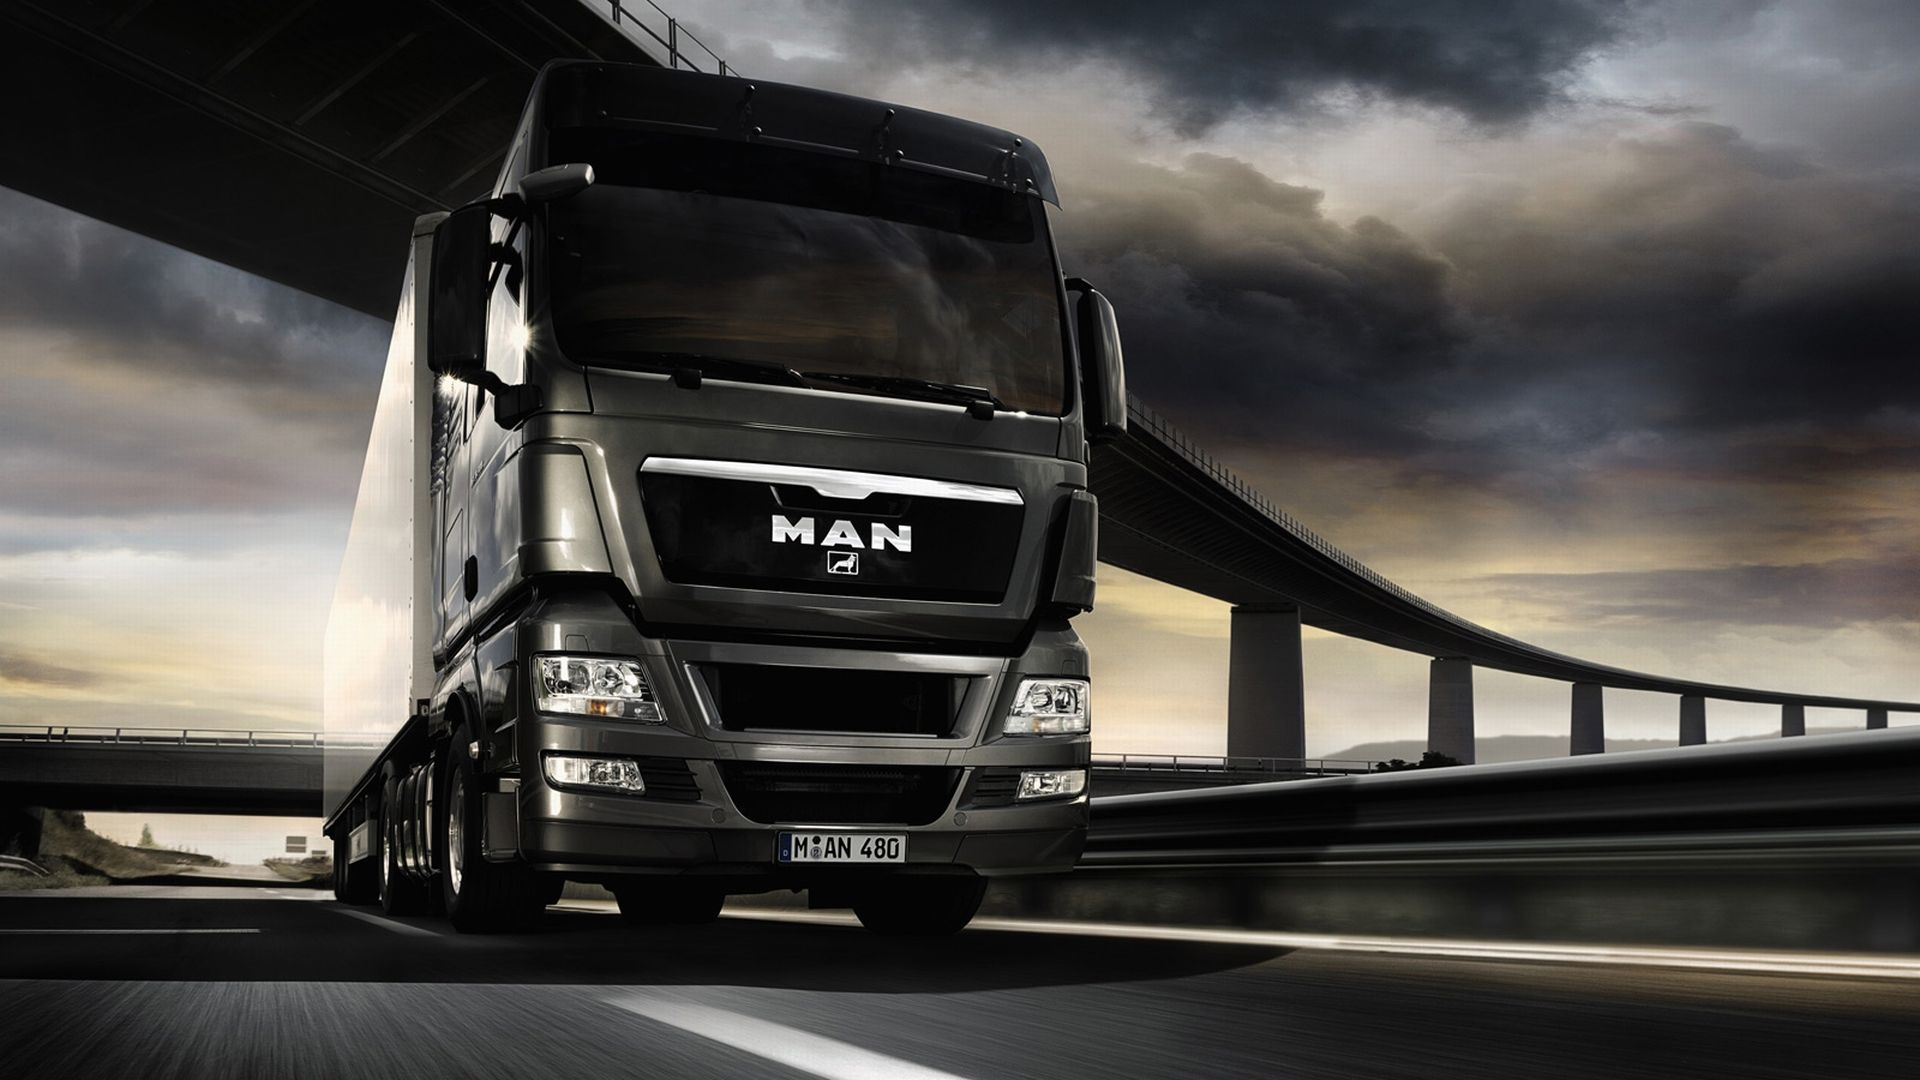 Volvo Truck Photos Download Wallpapers Free 1920x1080